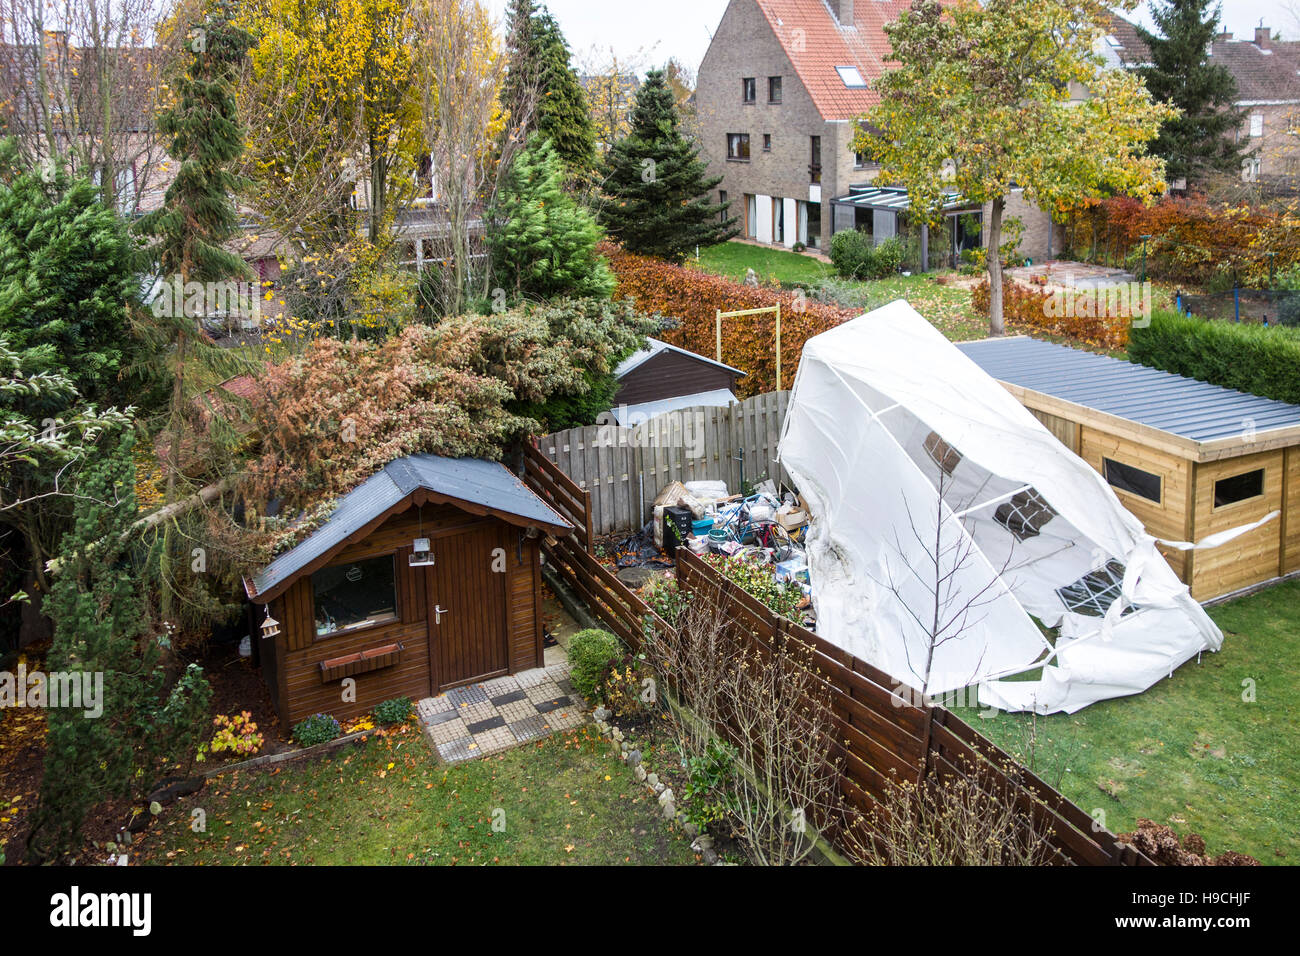 Broken tent and pine tree snapped in two and fallen on roof of garden house during autumn storm raging over Belgium Stock Photo